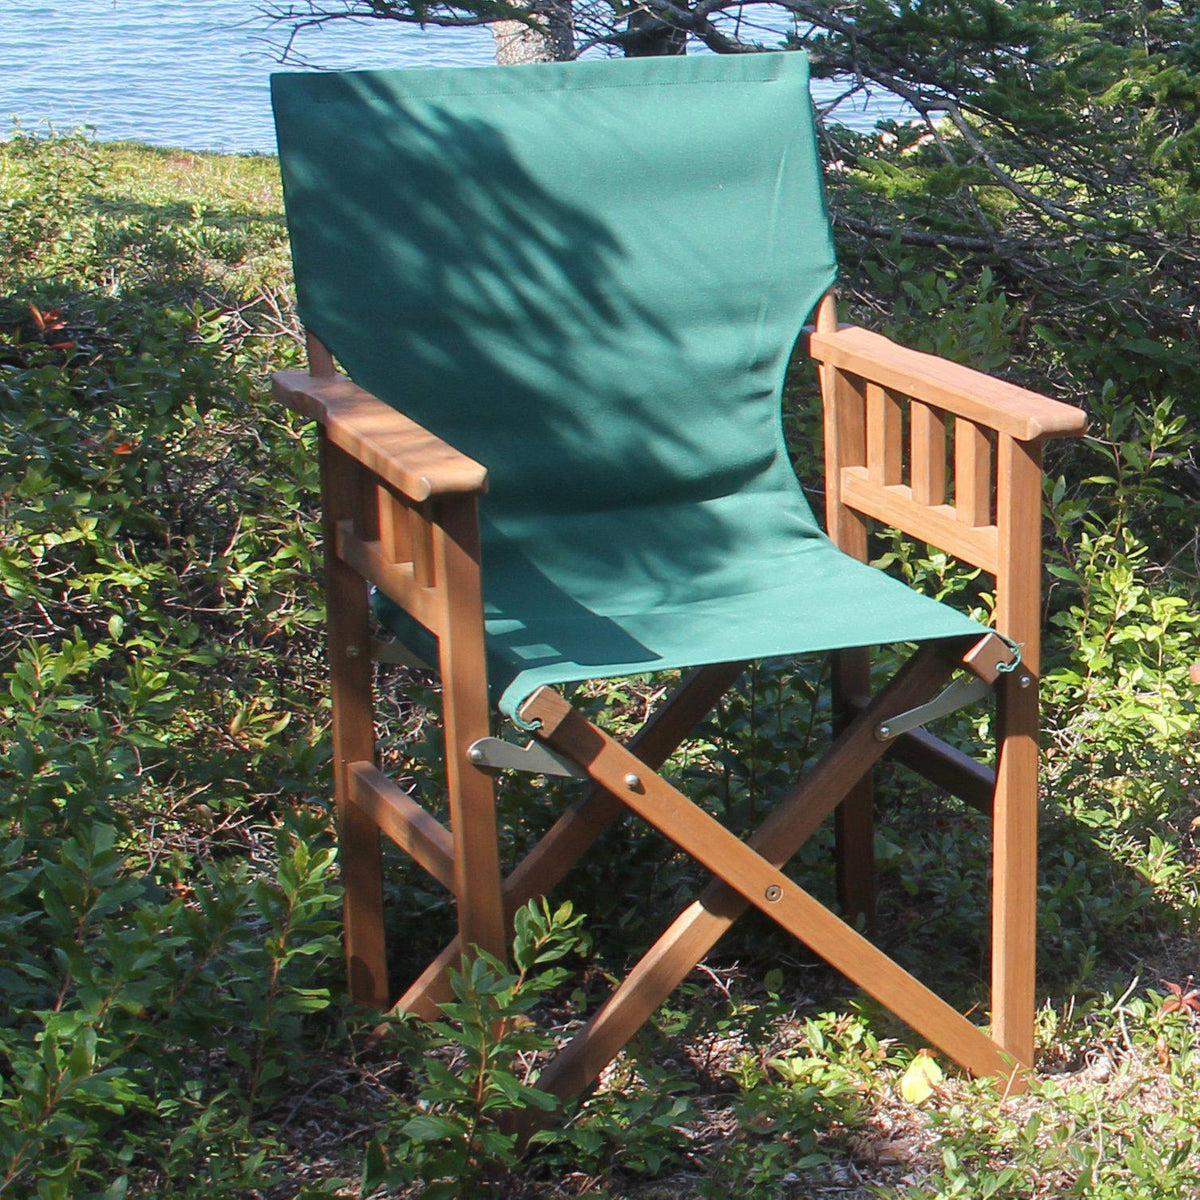 Pangean Campaign Chair, from Byer of Maine